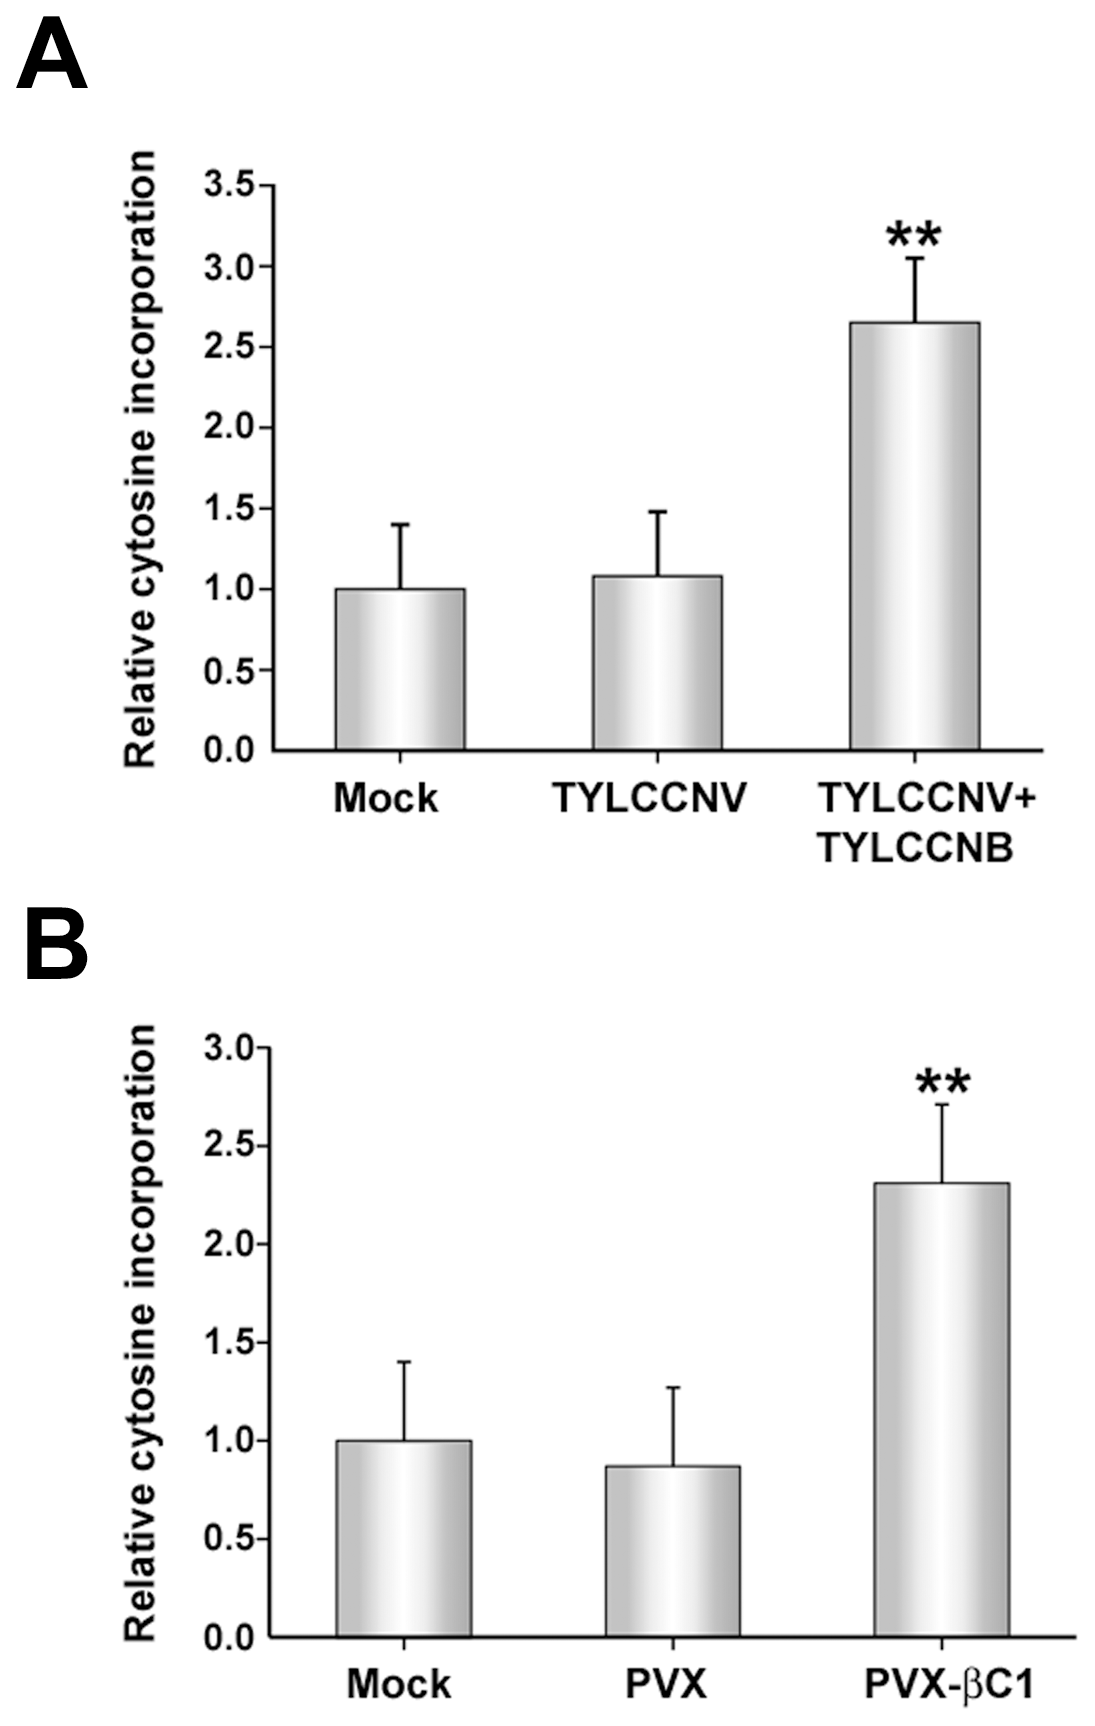 TYLCCNB, or βC1 expression, globally reduces cytosine methylation in the host genome.